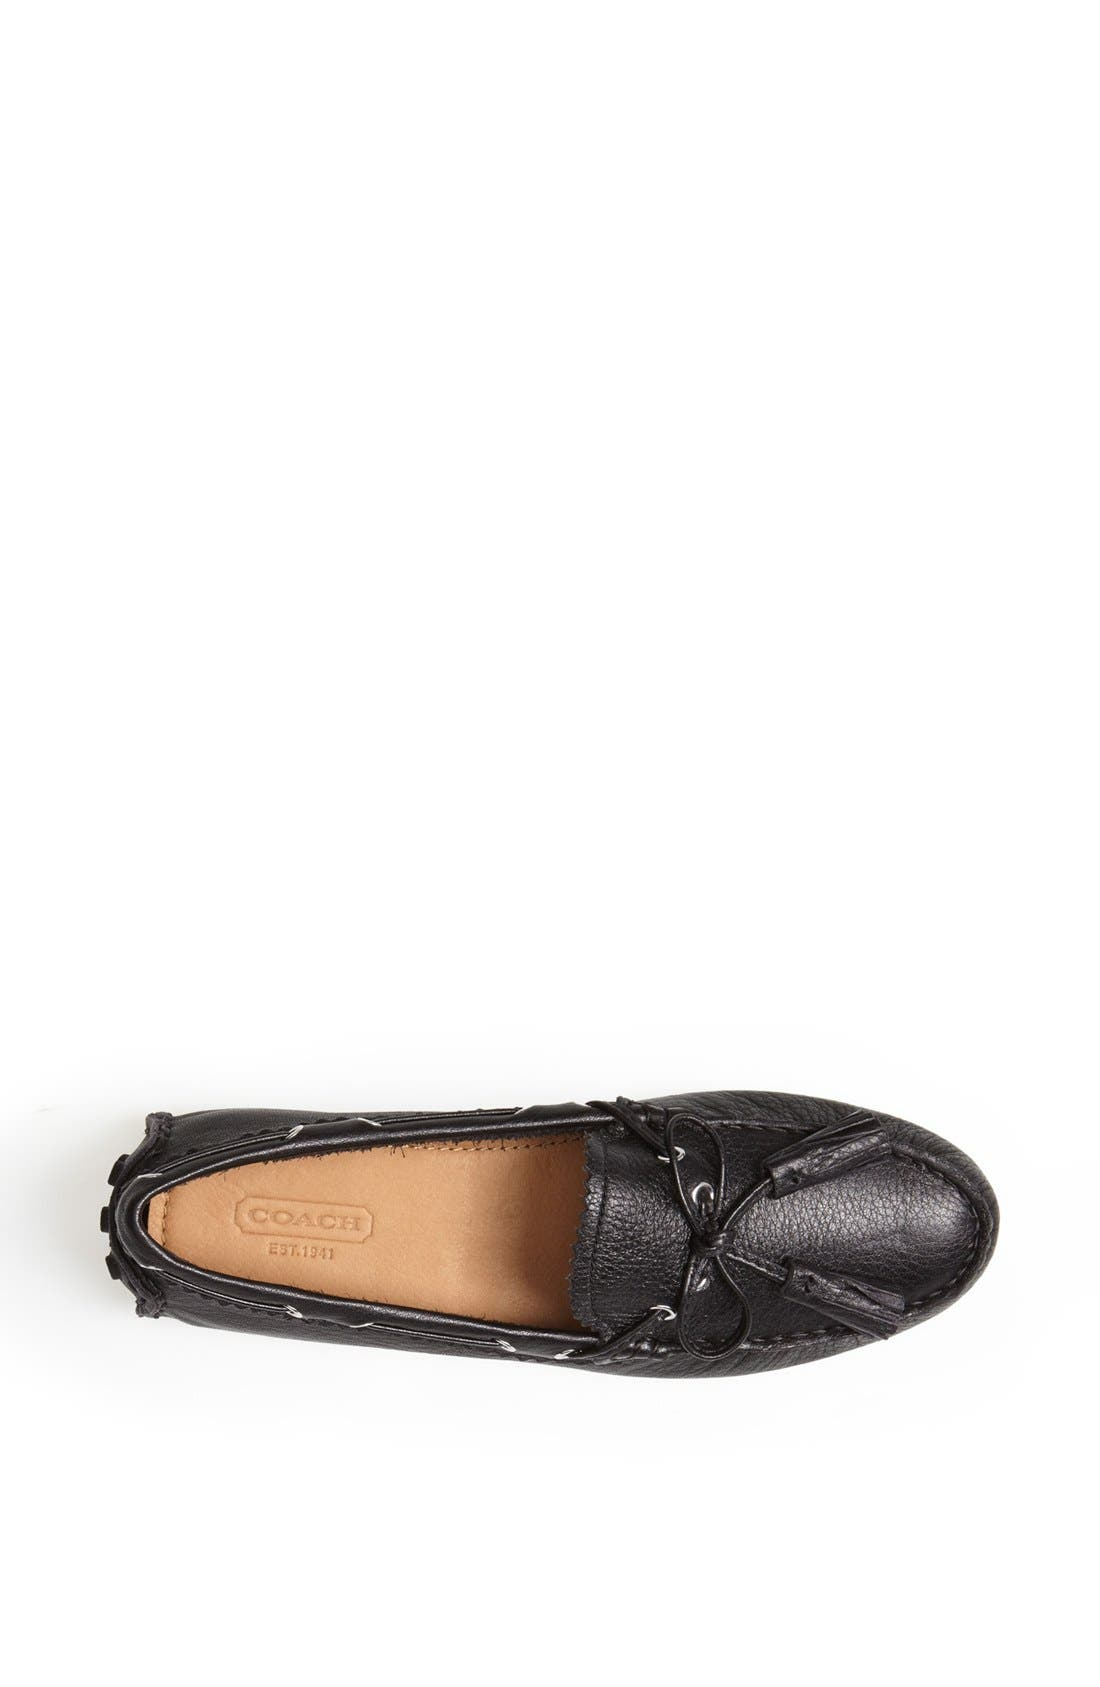 'Nadia' Leather Driving Loafer,                             Alternate thumbnail 3, color,                             001